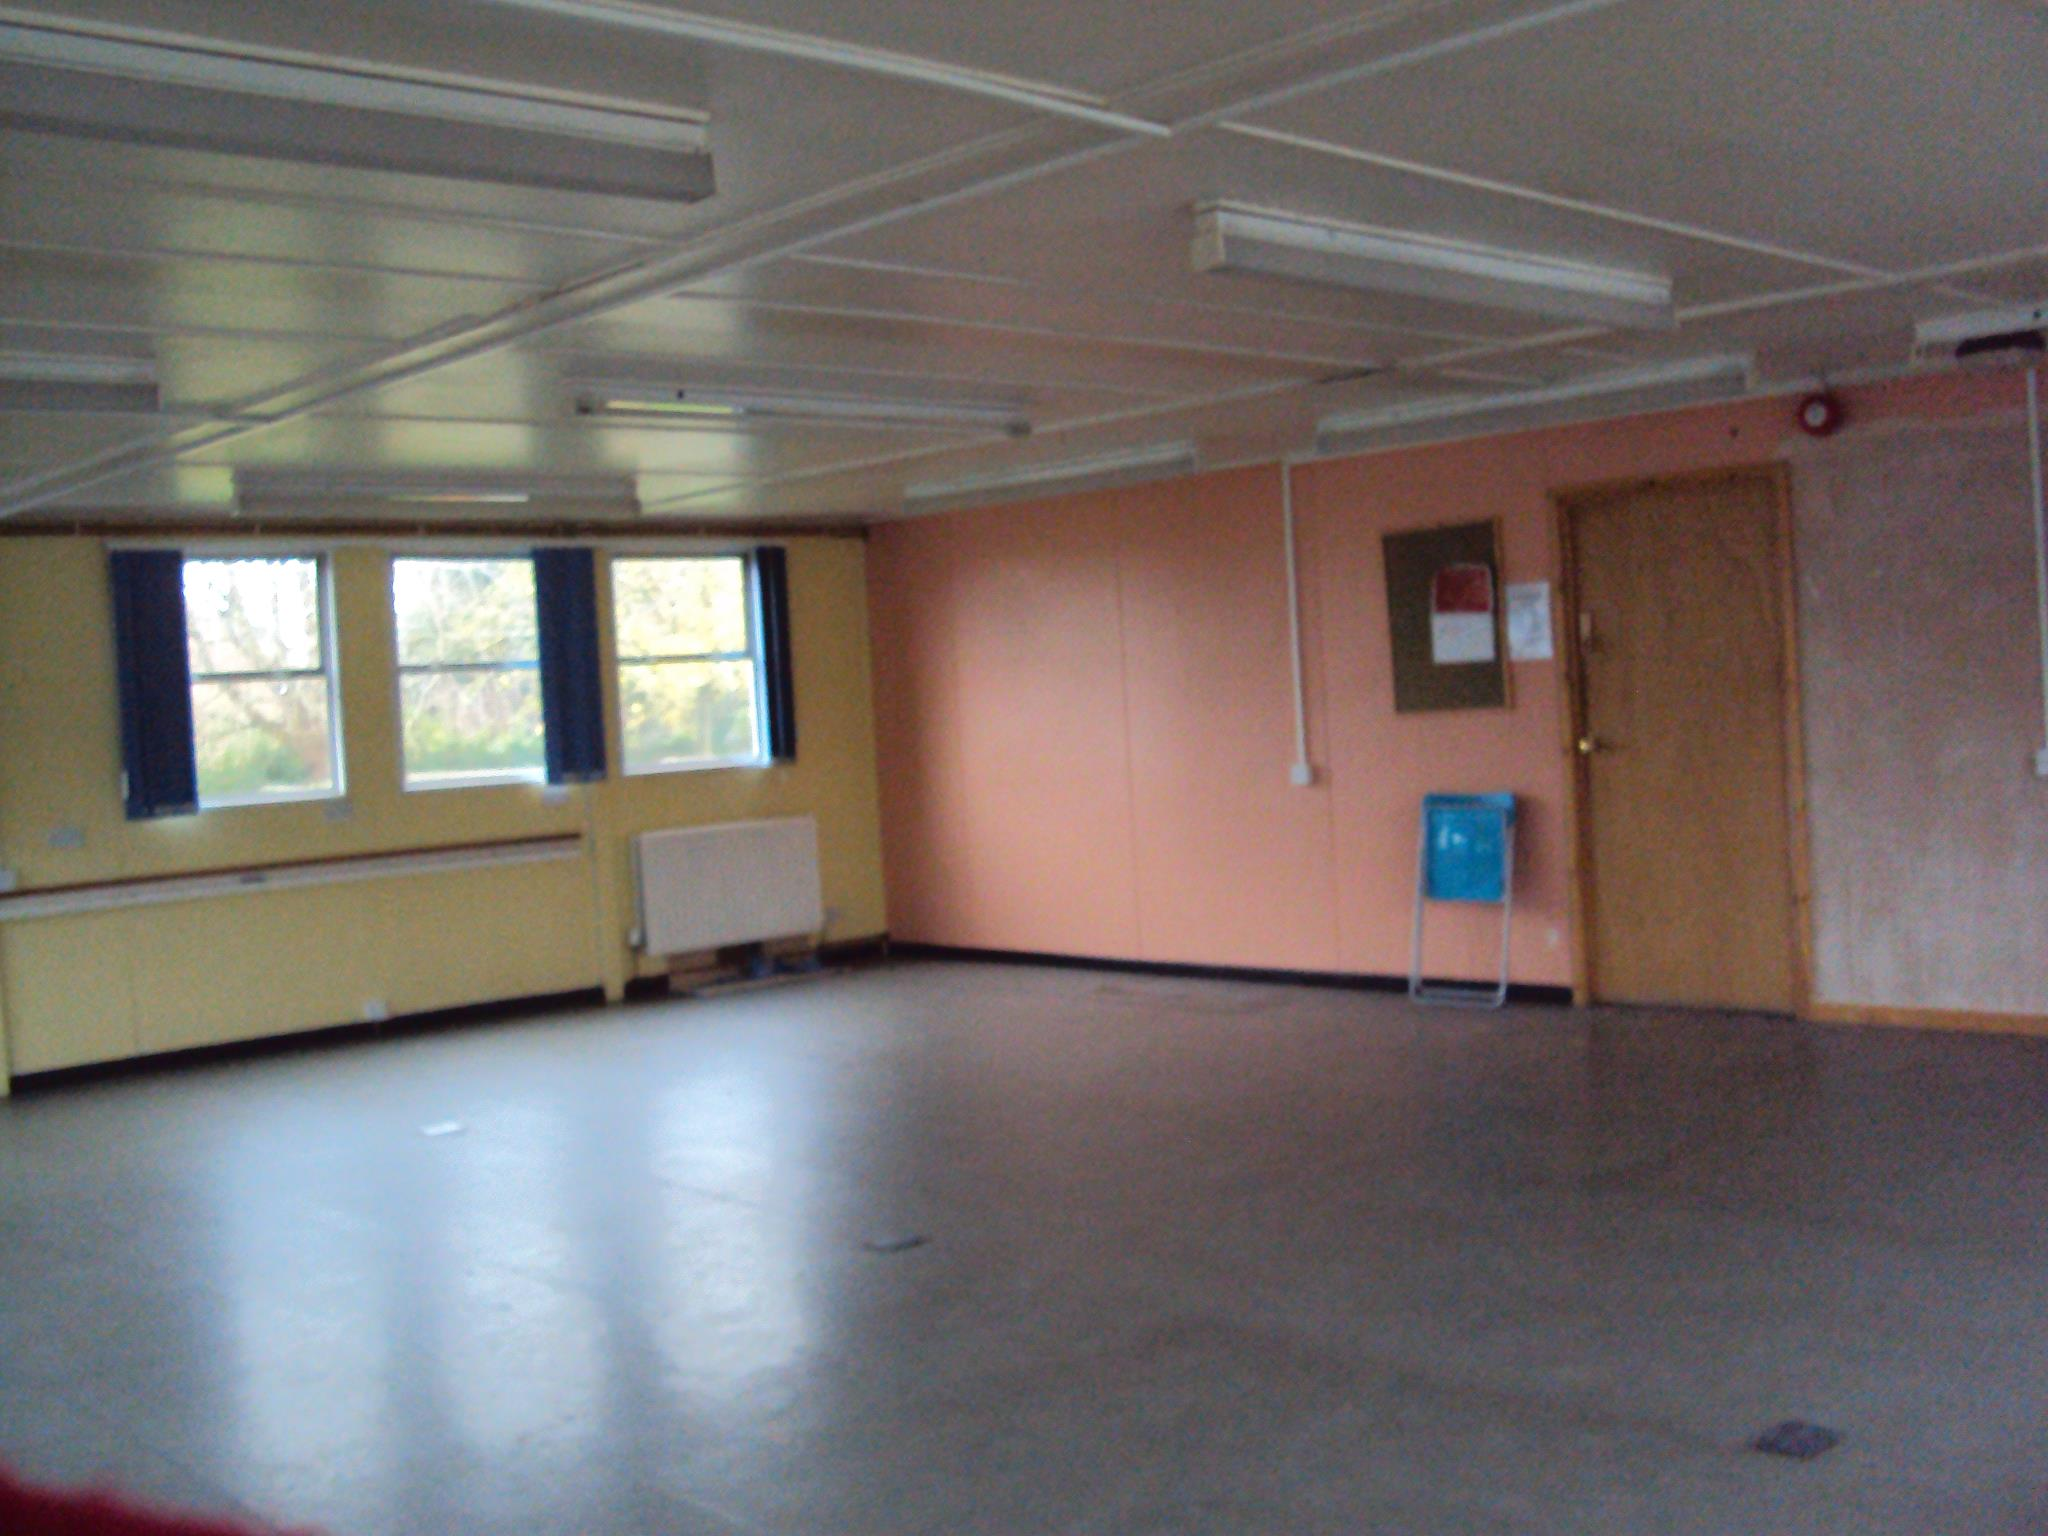 Old Boing! empty main room